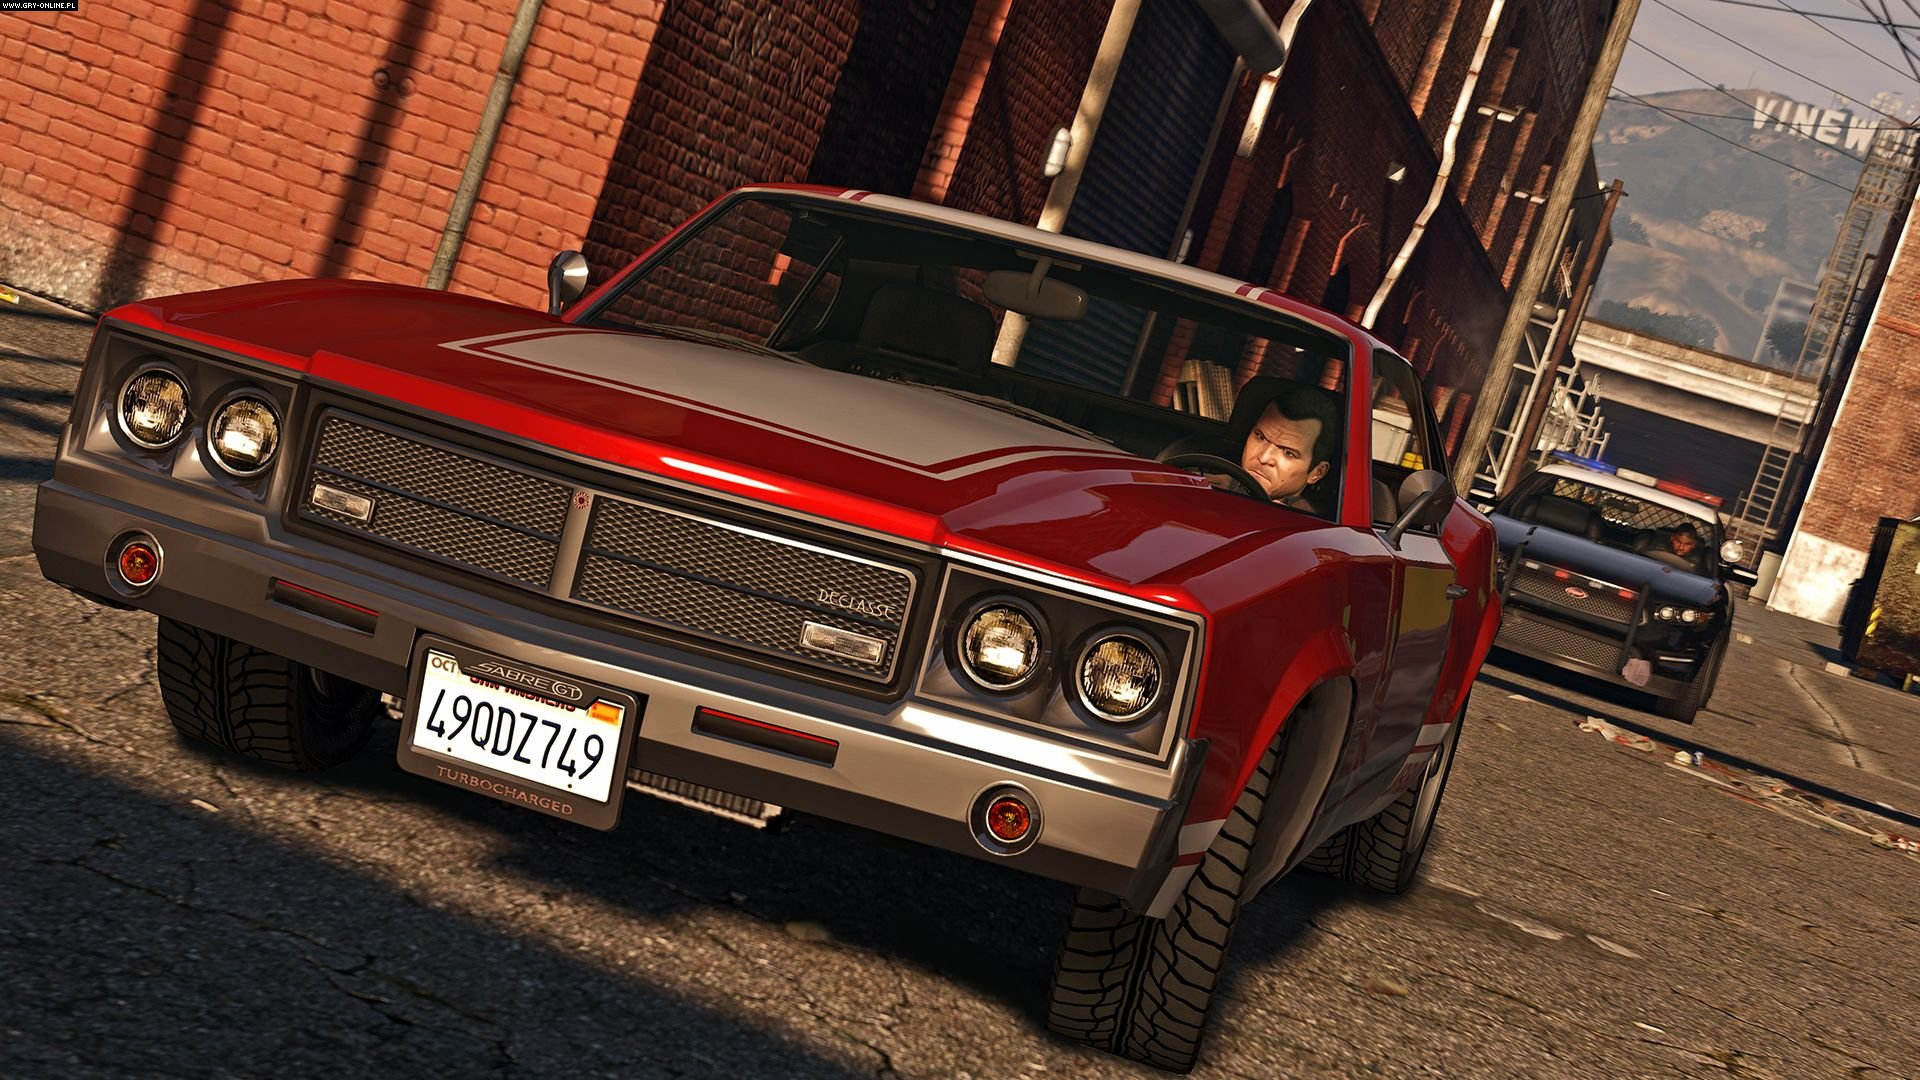 Grand Theft Auto V PC, PS4, XONE Gry Screen 56/396, Rockstar Games